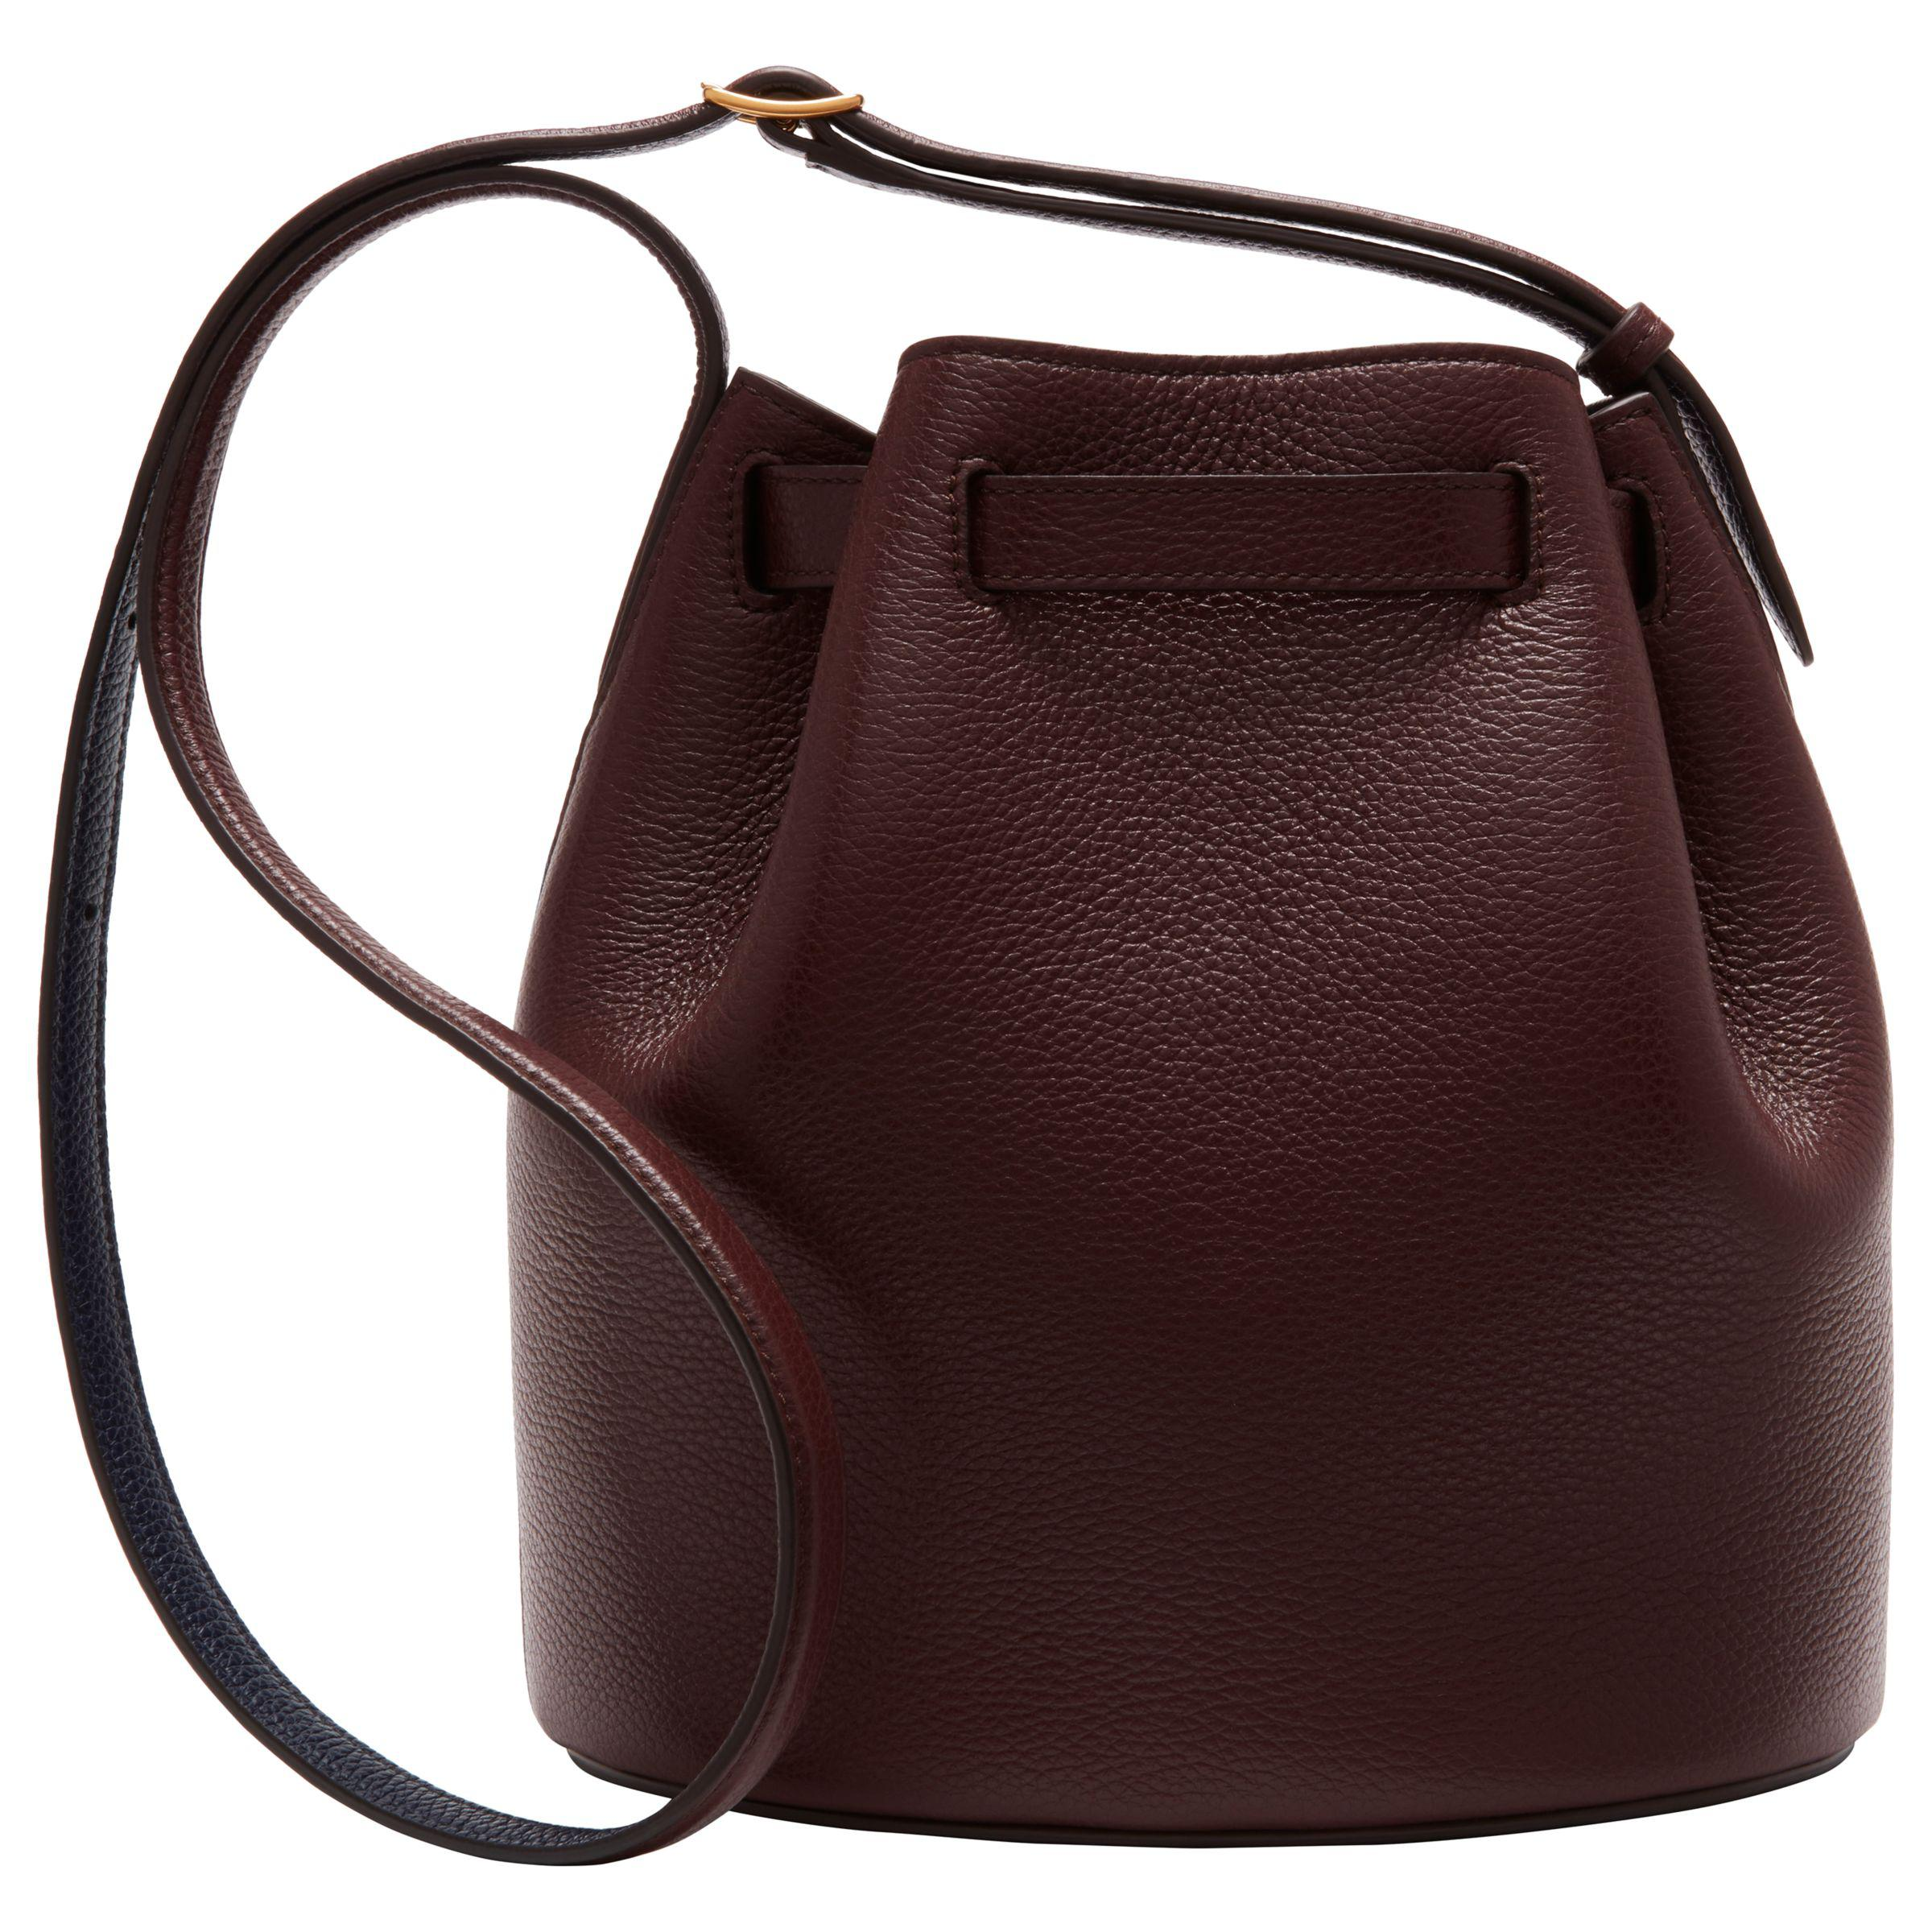 John Lewis Mulberry Abbey Small Classic Grain Leather Bucket Bag - Lyst f622b12dc1656